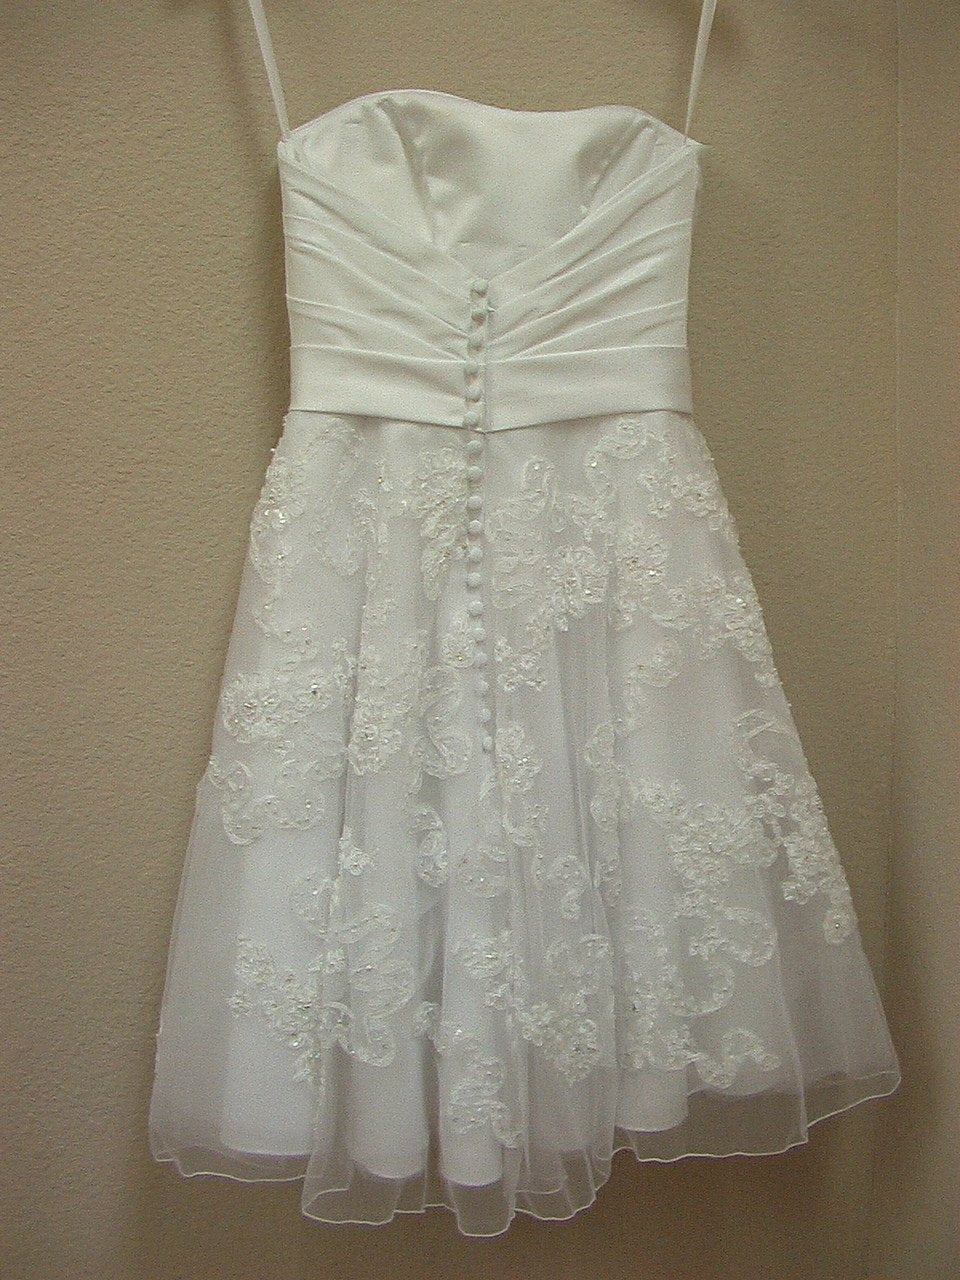 Allure 2355 White/Silver size 6 In Stock Wedding Dress - Tom's Bridal